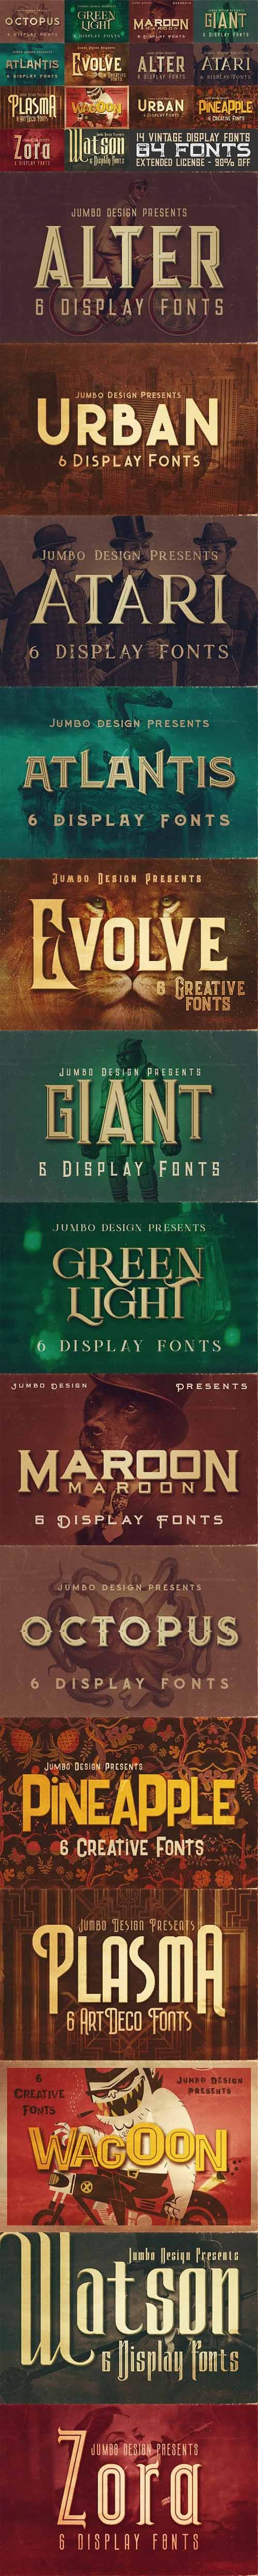 14 Vintage Display Fonts - 84 Fonts